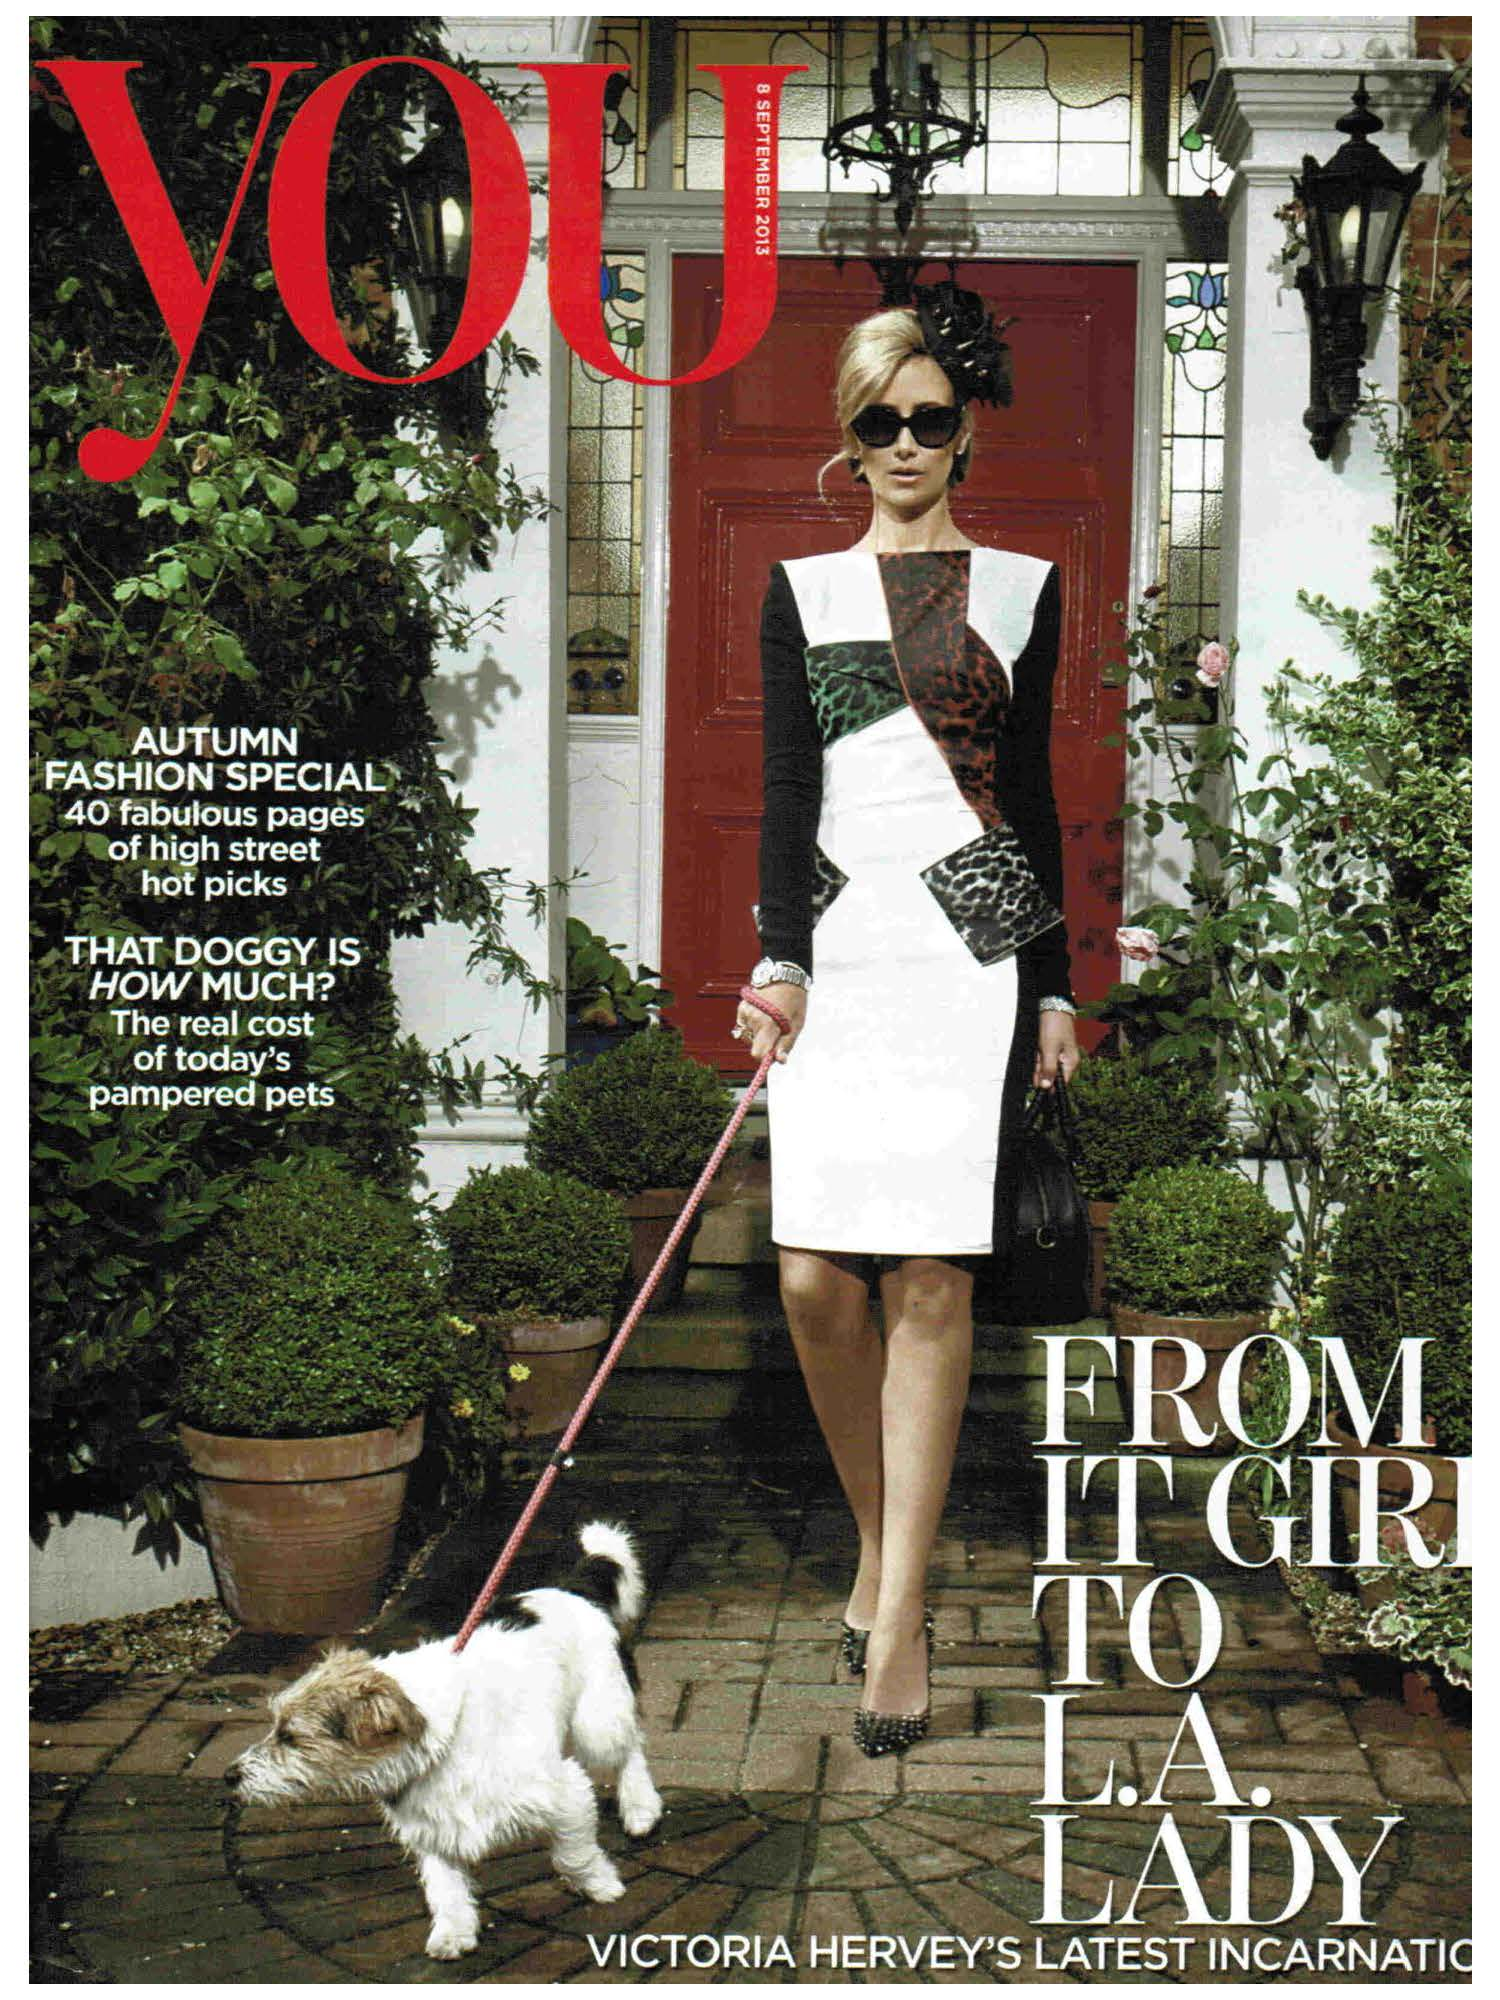 dog, dogs, style, magazine, press, editorial, you